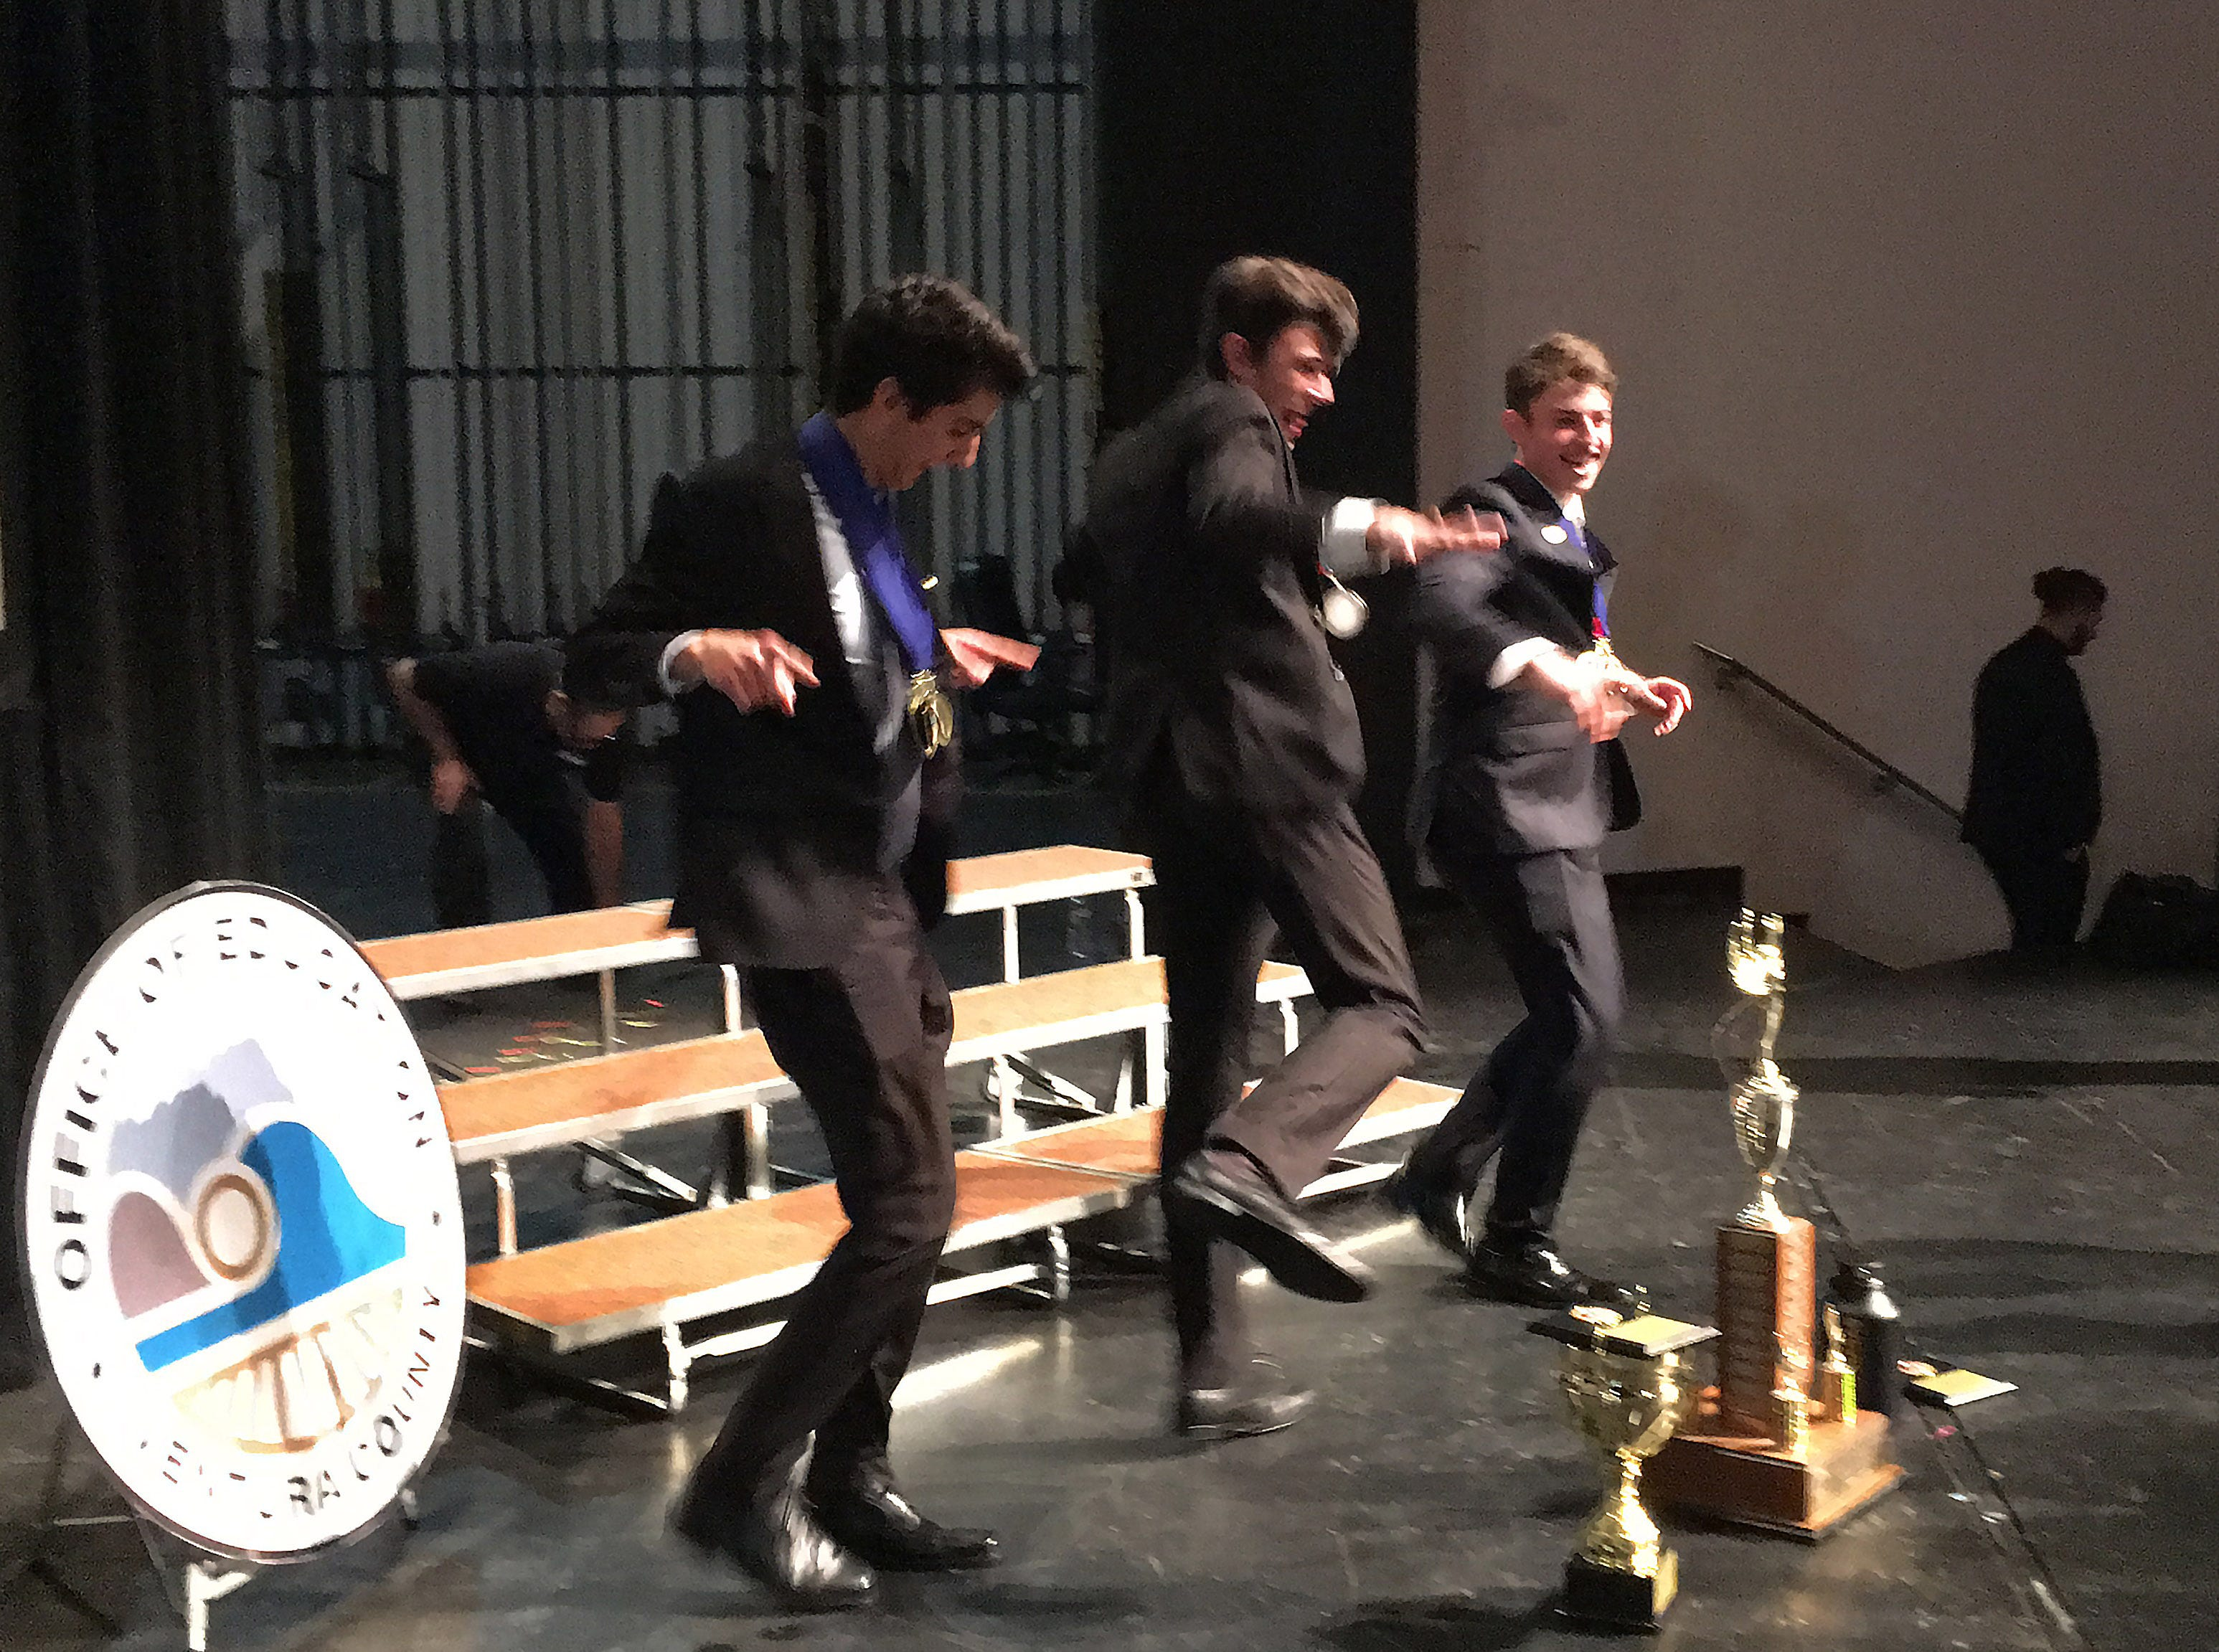 From left, Daniel Shishegar, Bennett Cohen and Maxon Repass, of Calabasas High School, celebrate on stage after their school was named winner of the Ventura County Academic Decathlon for a third year in a row at the awards ceremony on Monday.